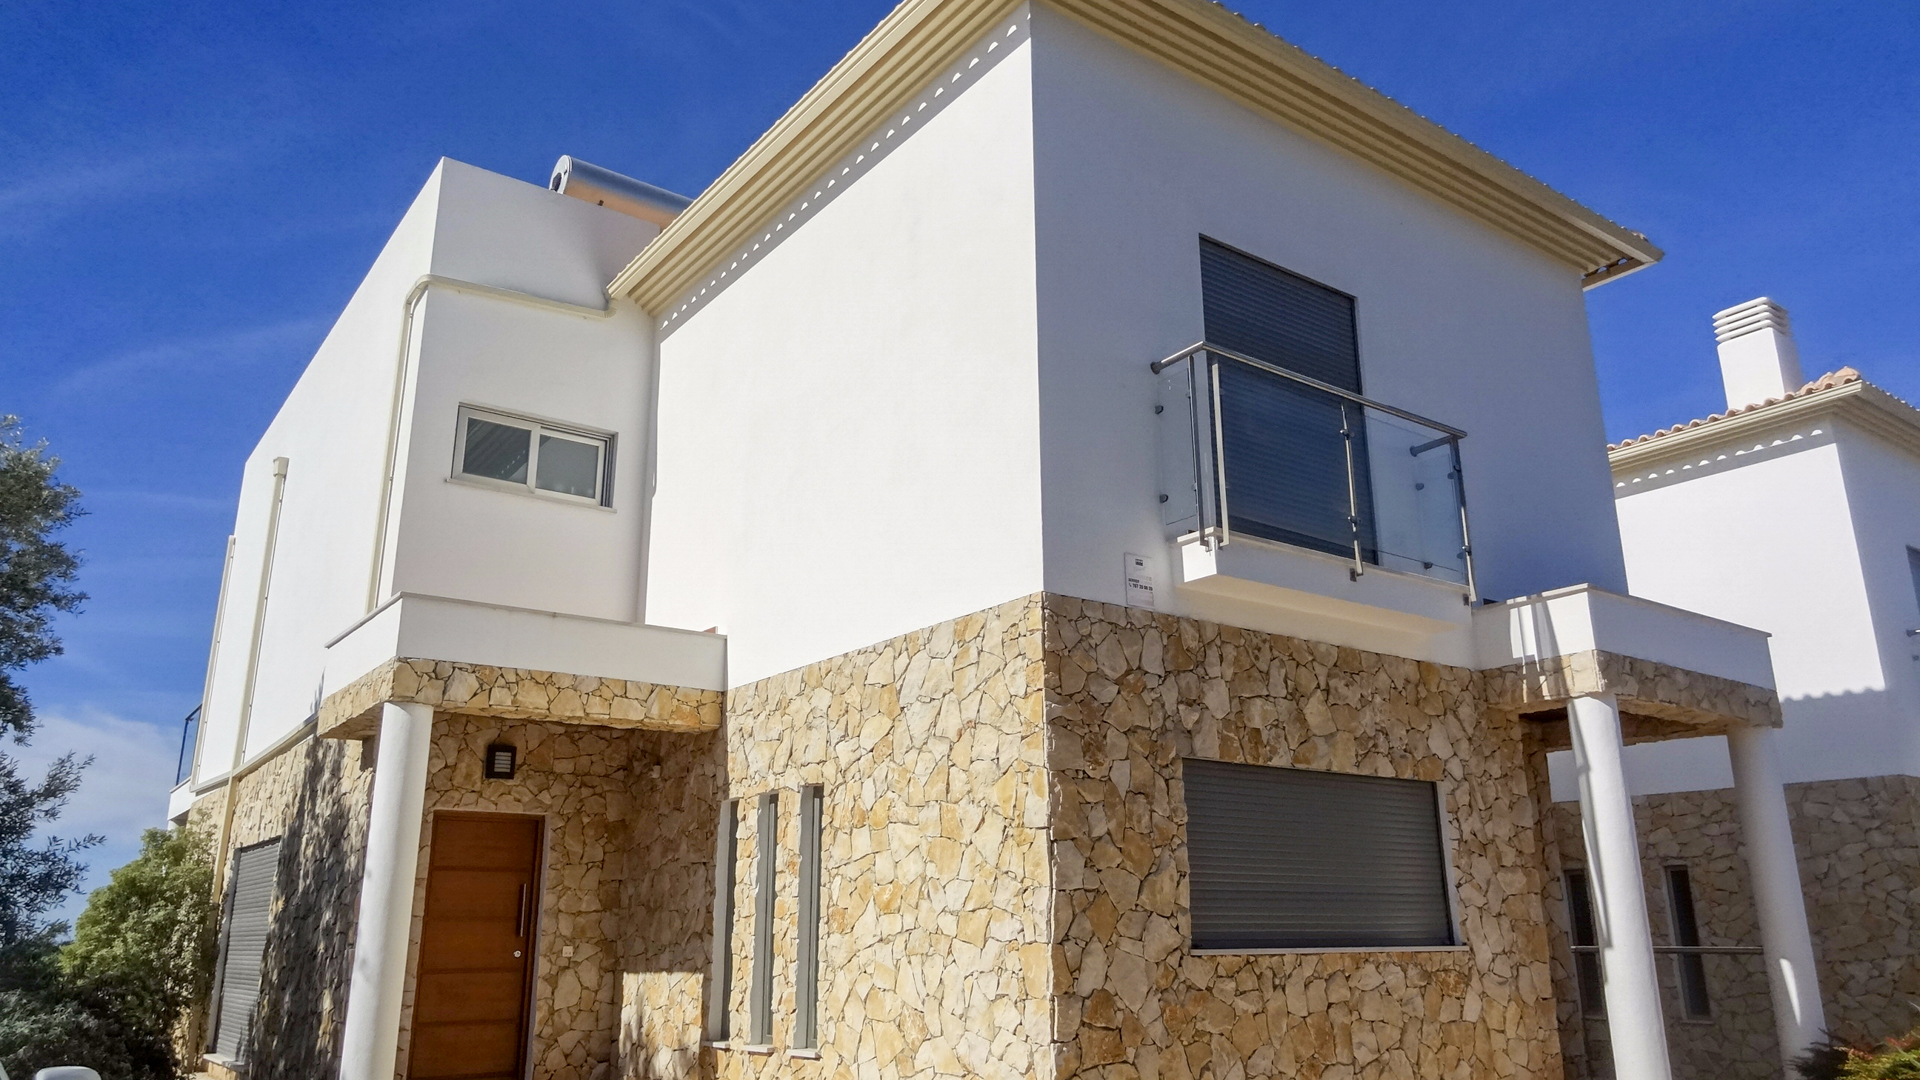 Modern Newly Built 4 Bedroom Villas with Sea Views, Albufeira | S5034 Modern 4 bedroom villas with infinity pool and landscaped garden, in Albufeira. Due to their elevated position, the villas have amazing panoramic sea views. Great for permanent living or holidays.